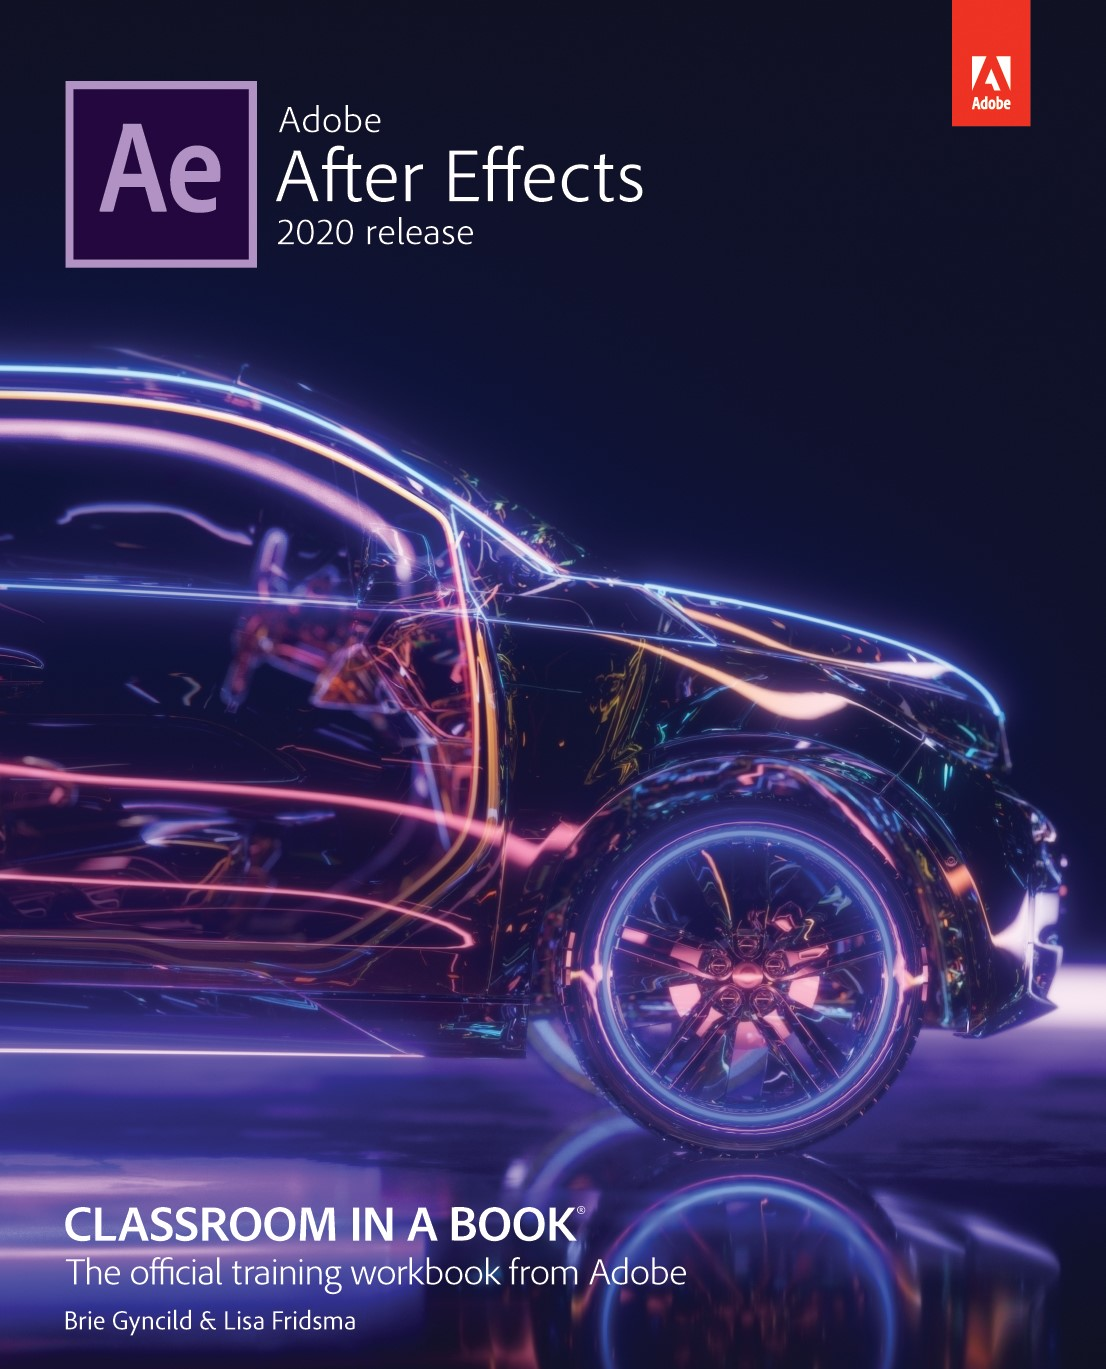 Adobe After Effects Classroom in a Book (2020 release) (Web Edition)